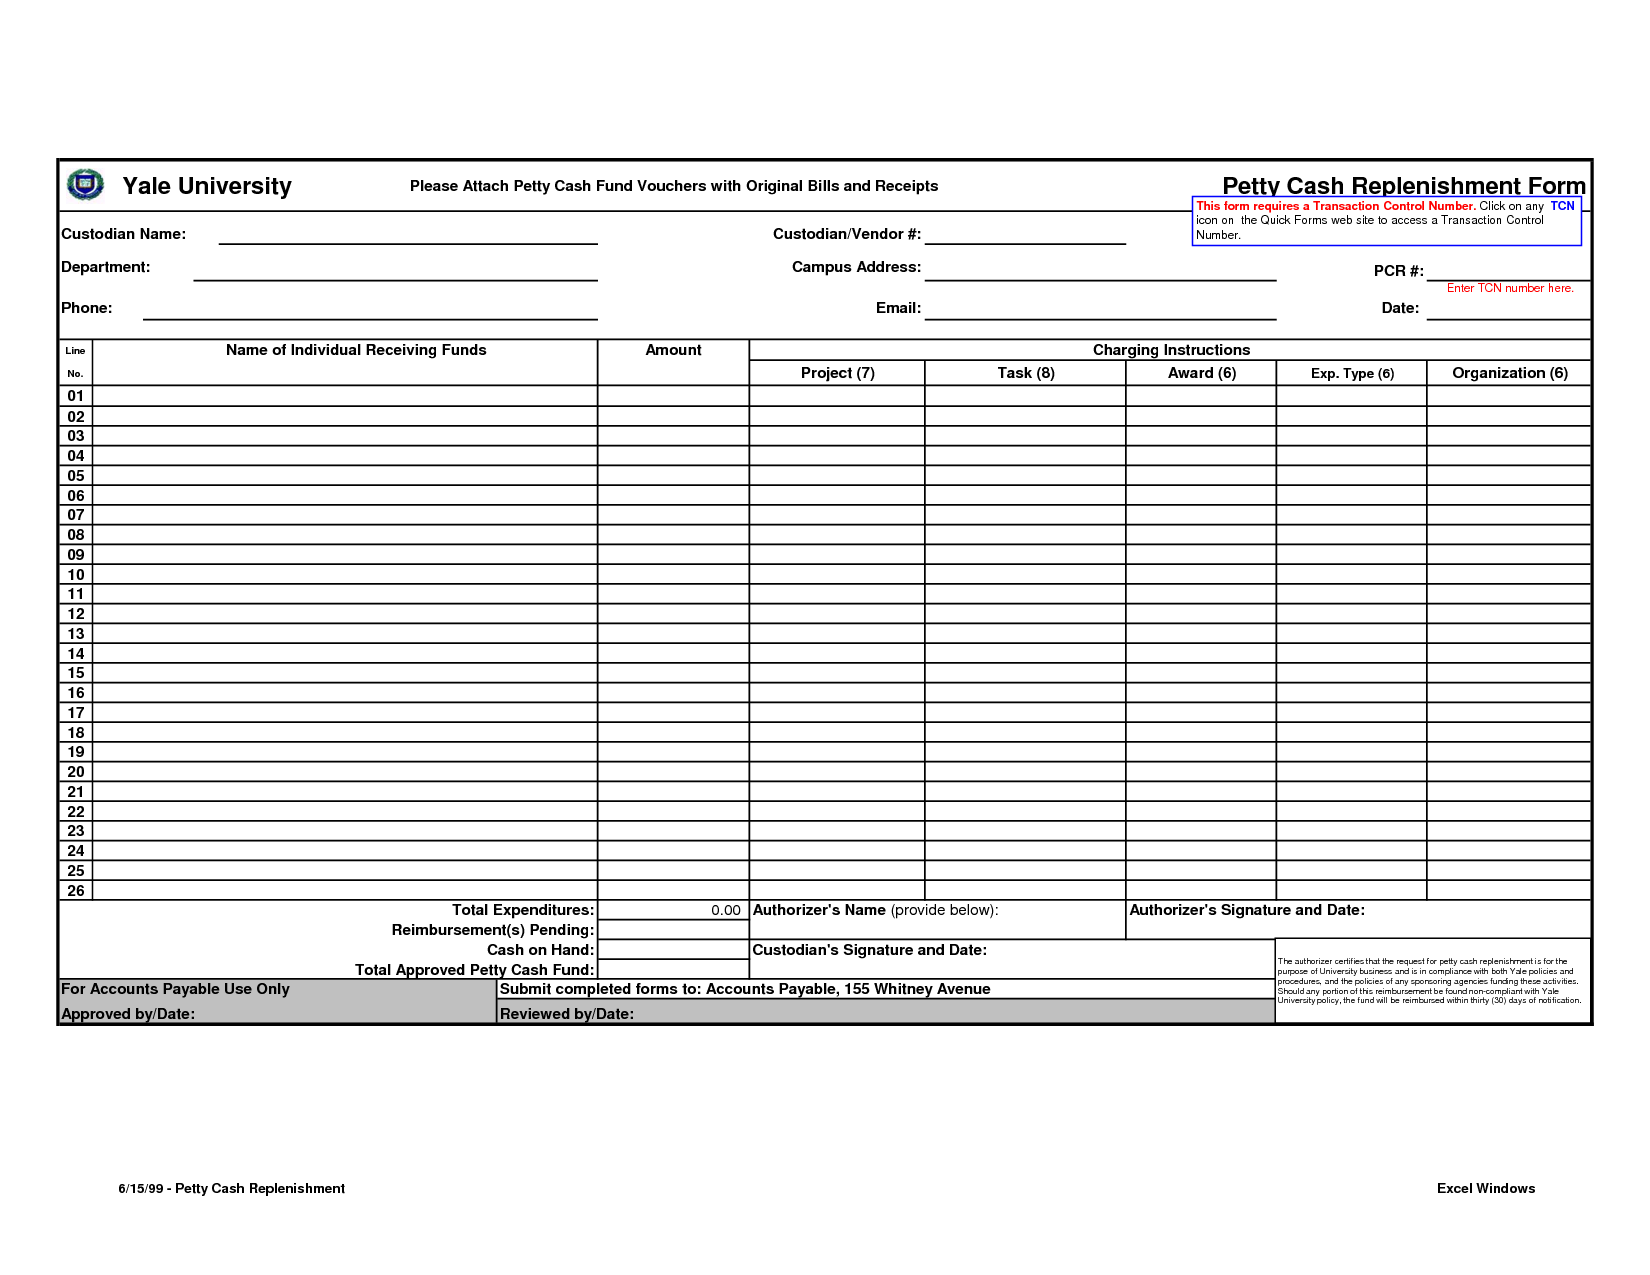 Charming Petty Cash Form Template Excel Intended For Petty Cash Form Template